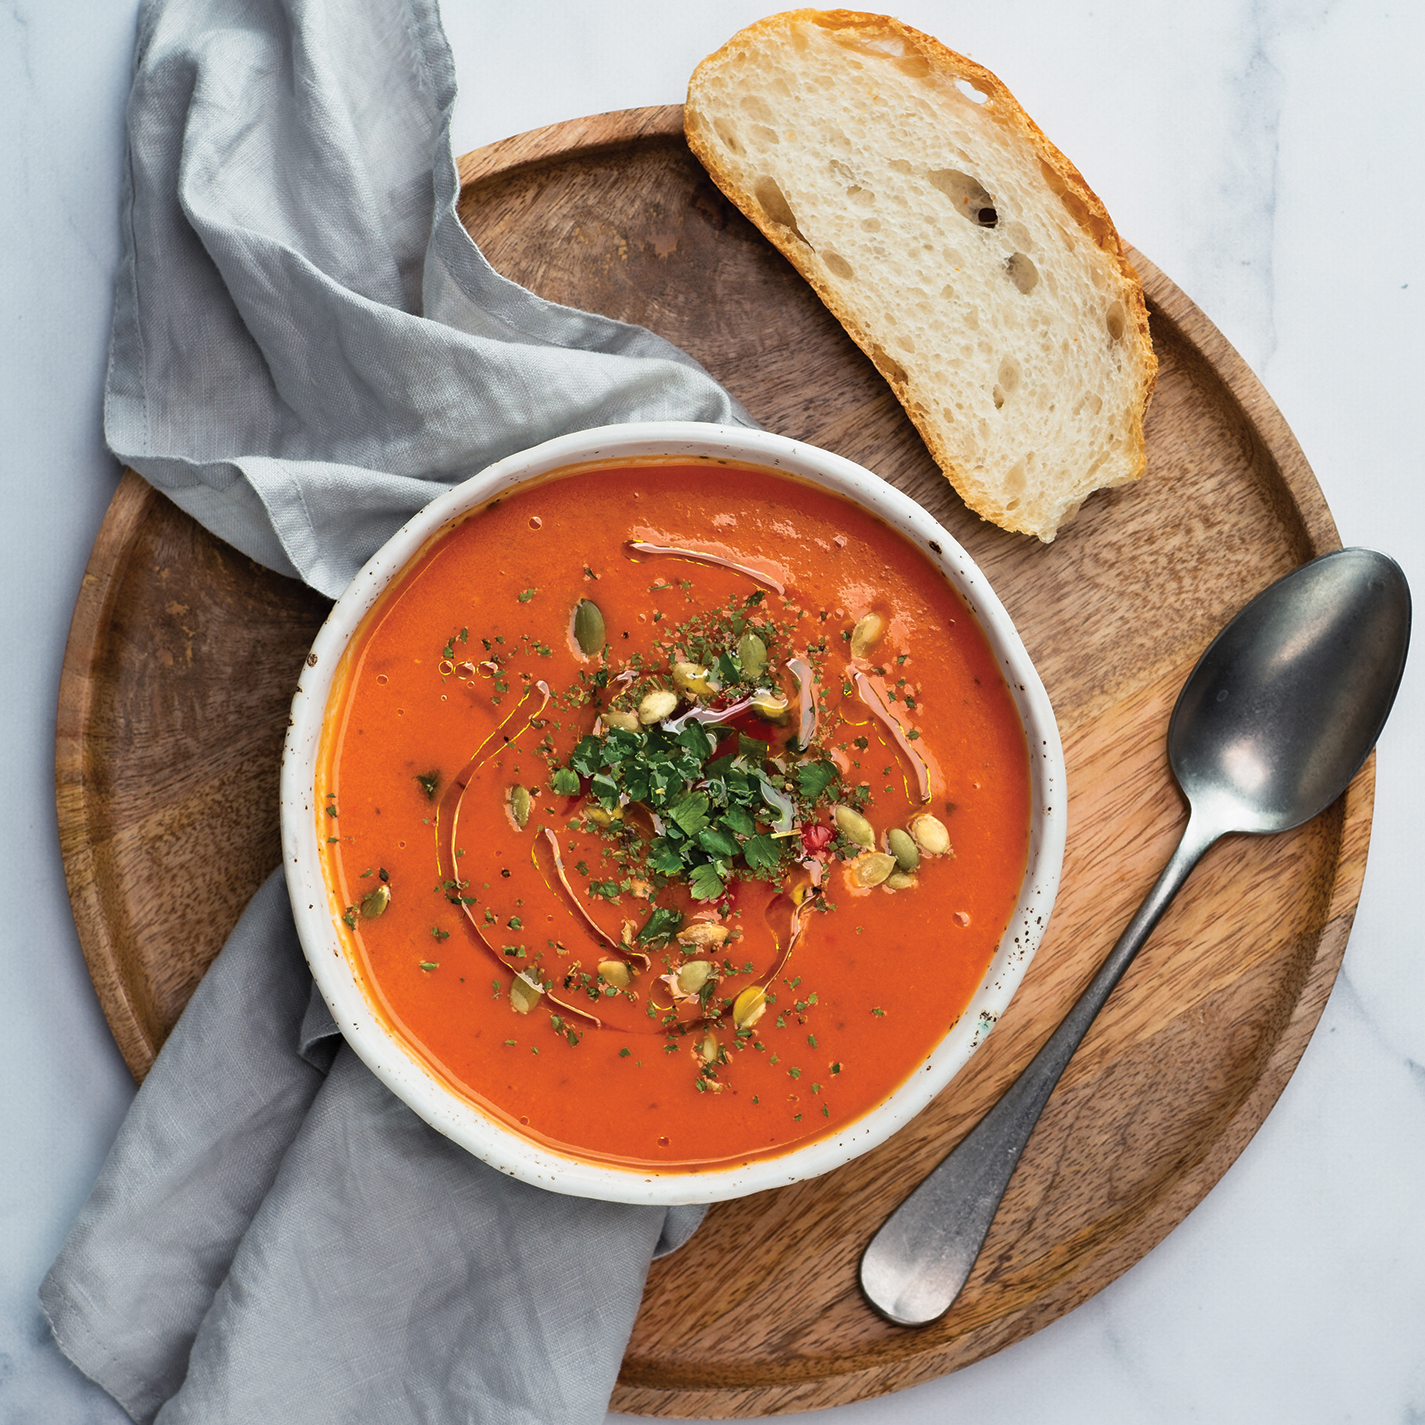 gaspacho-soup-on-light-marble-top-view-TXY72FM.jpg